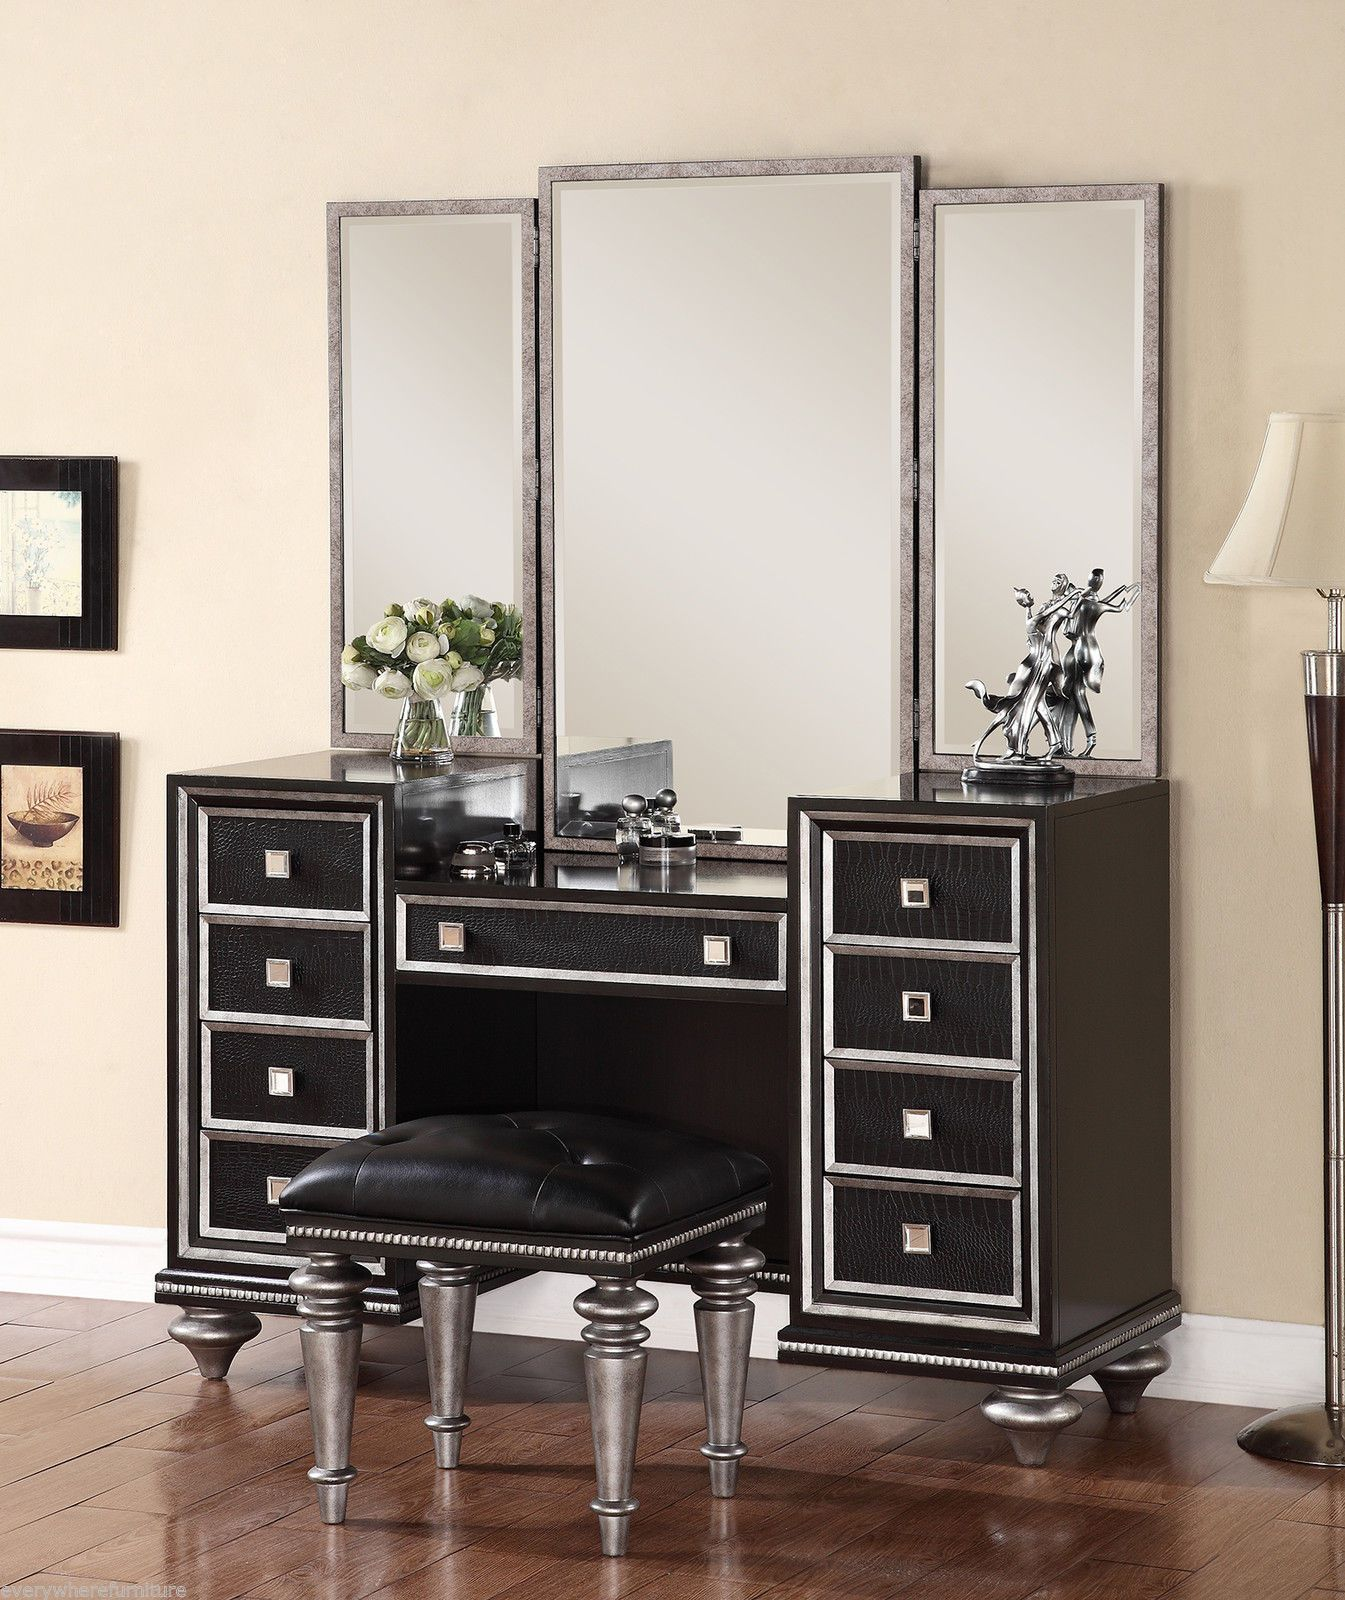 Bedroom Furniture Chairs Bedroom Hanging Cabinet Design Bedroom View From Bed D I Y Bedroom Decor: Wynwood Glam Black Mirrored King Size Mansion Bed Bedroom